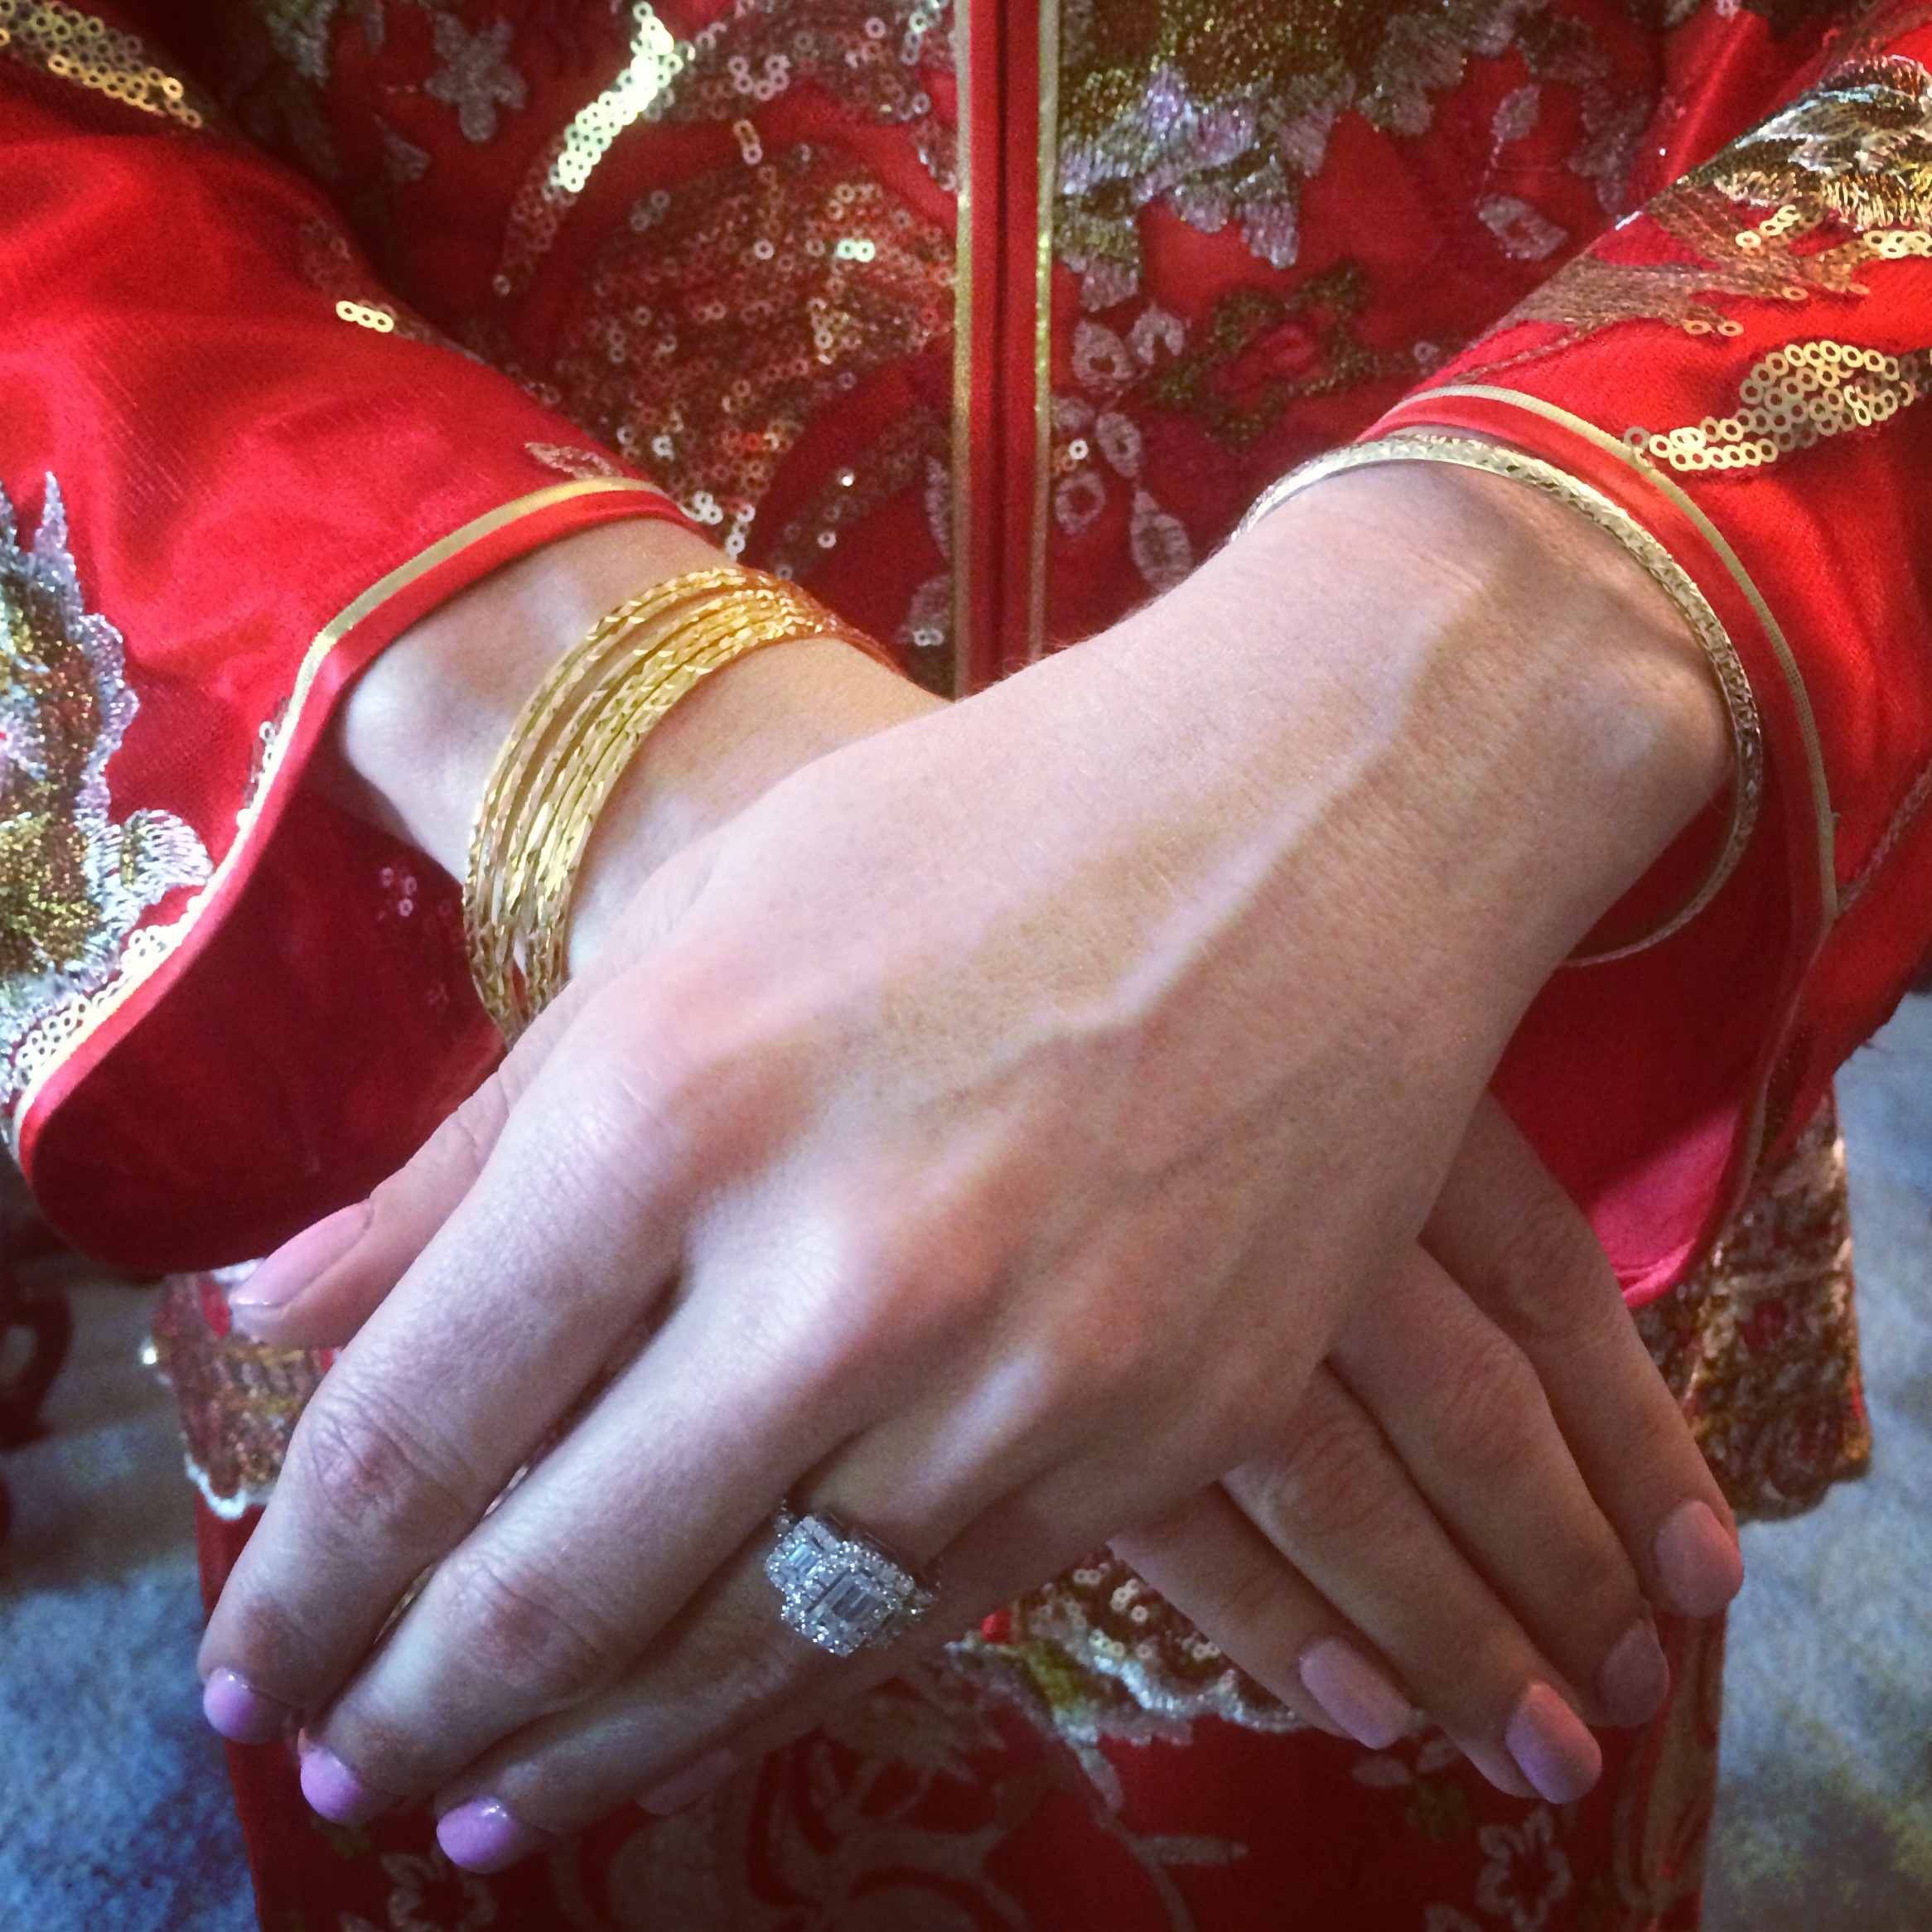 The bride was given beautiful gold bangle bracelets, along with earrings and a necklace, from her new in-laws during the Chinese Tea Ceremony.Photo by Andrea Eppolito.